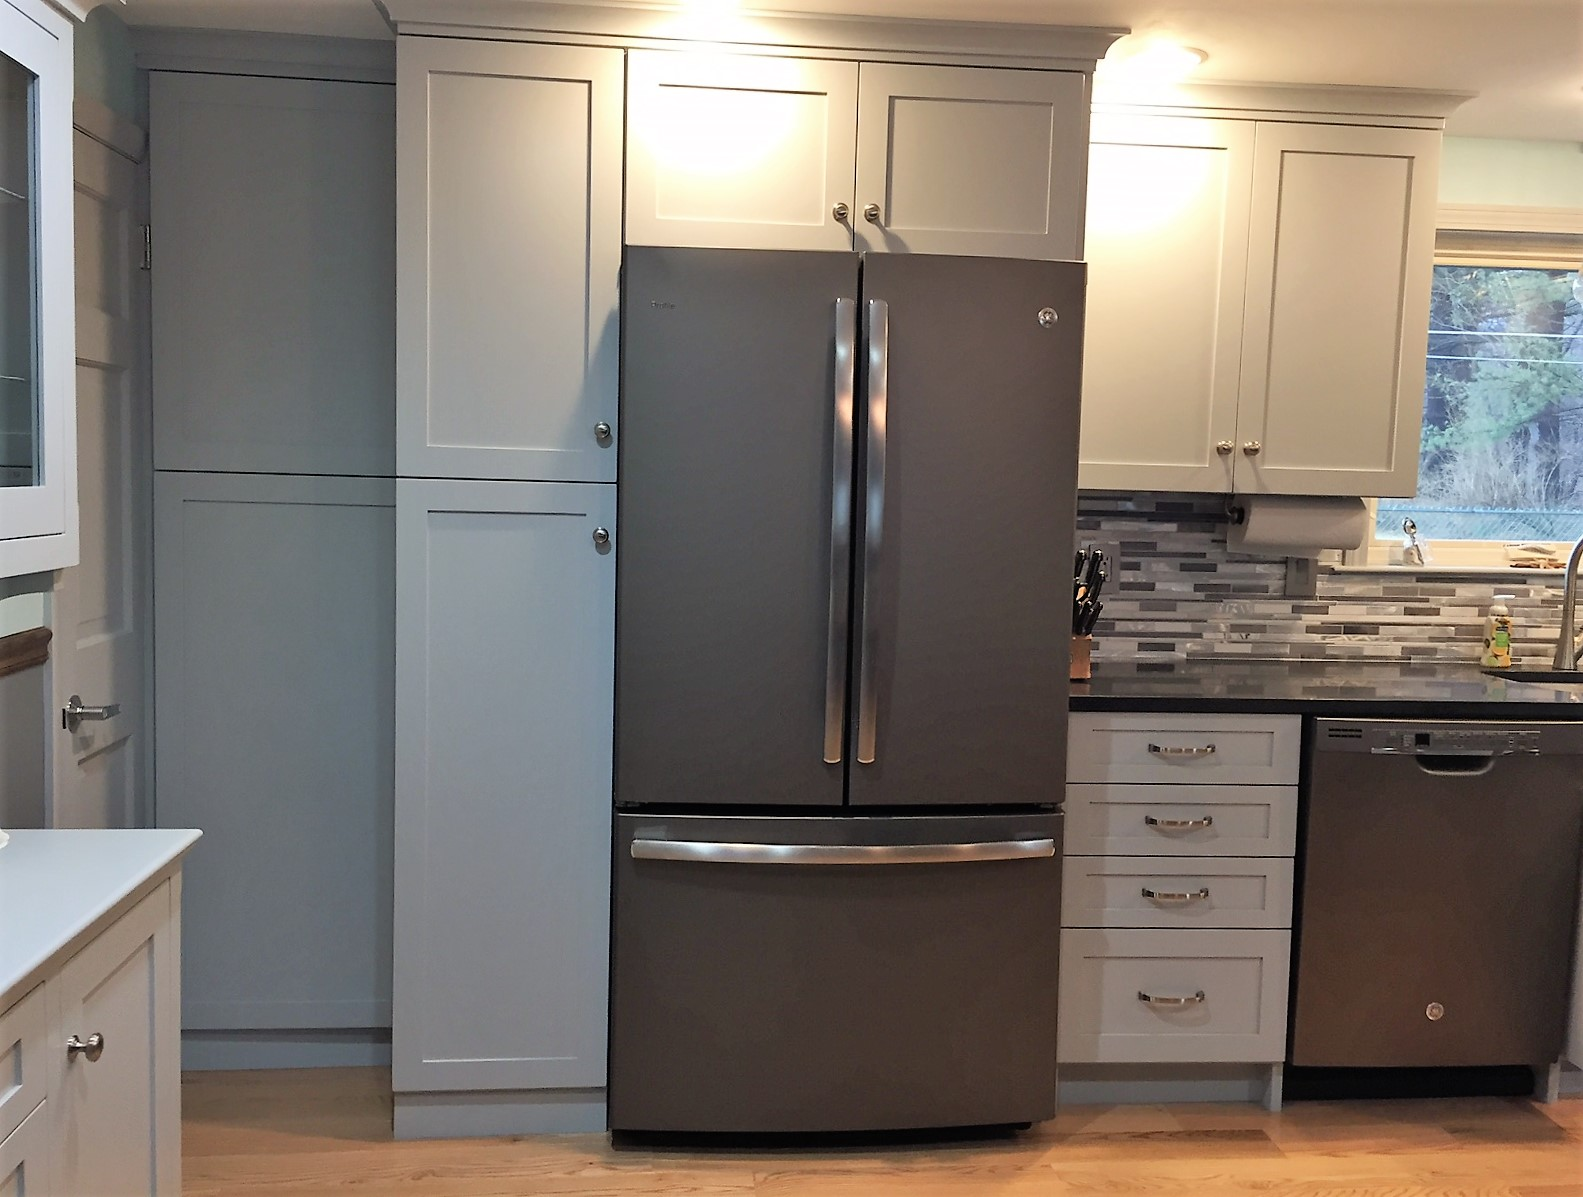 Kitchen in Dudley, MA